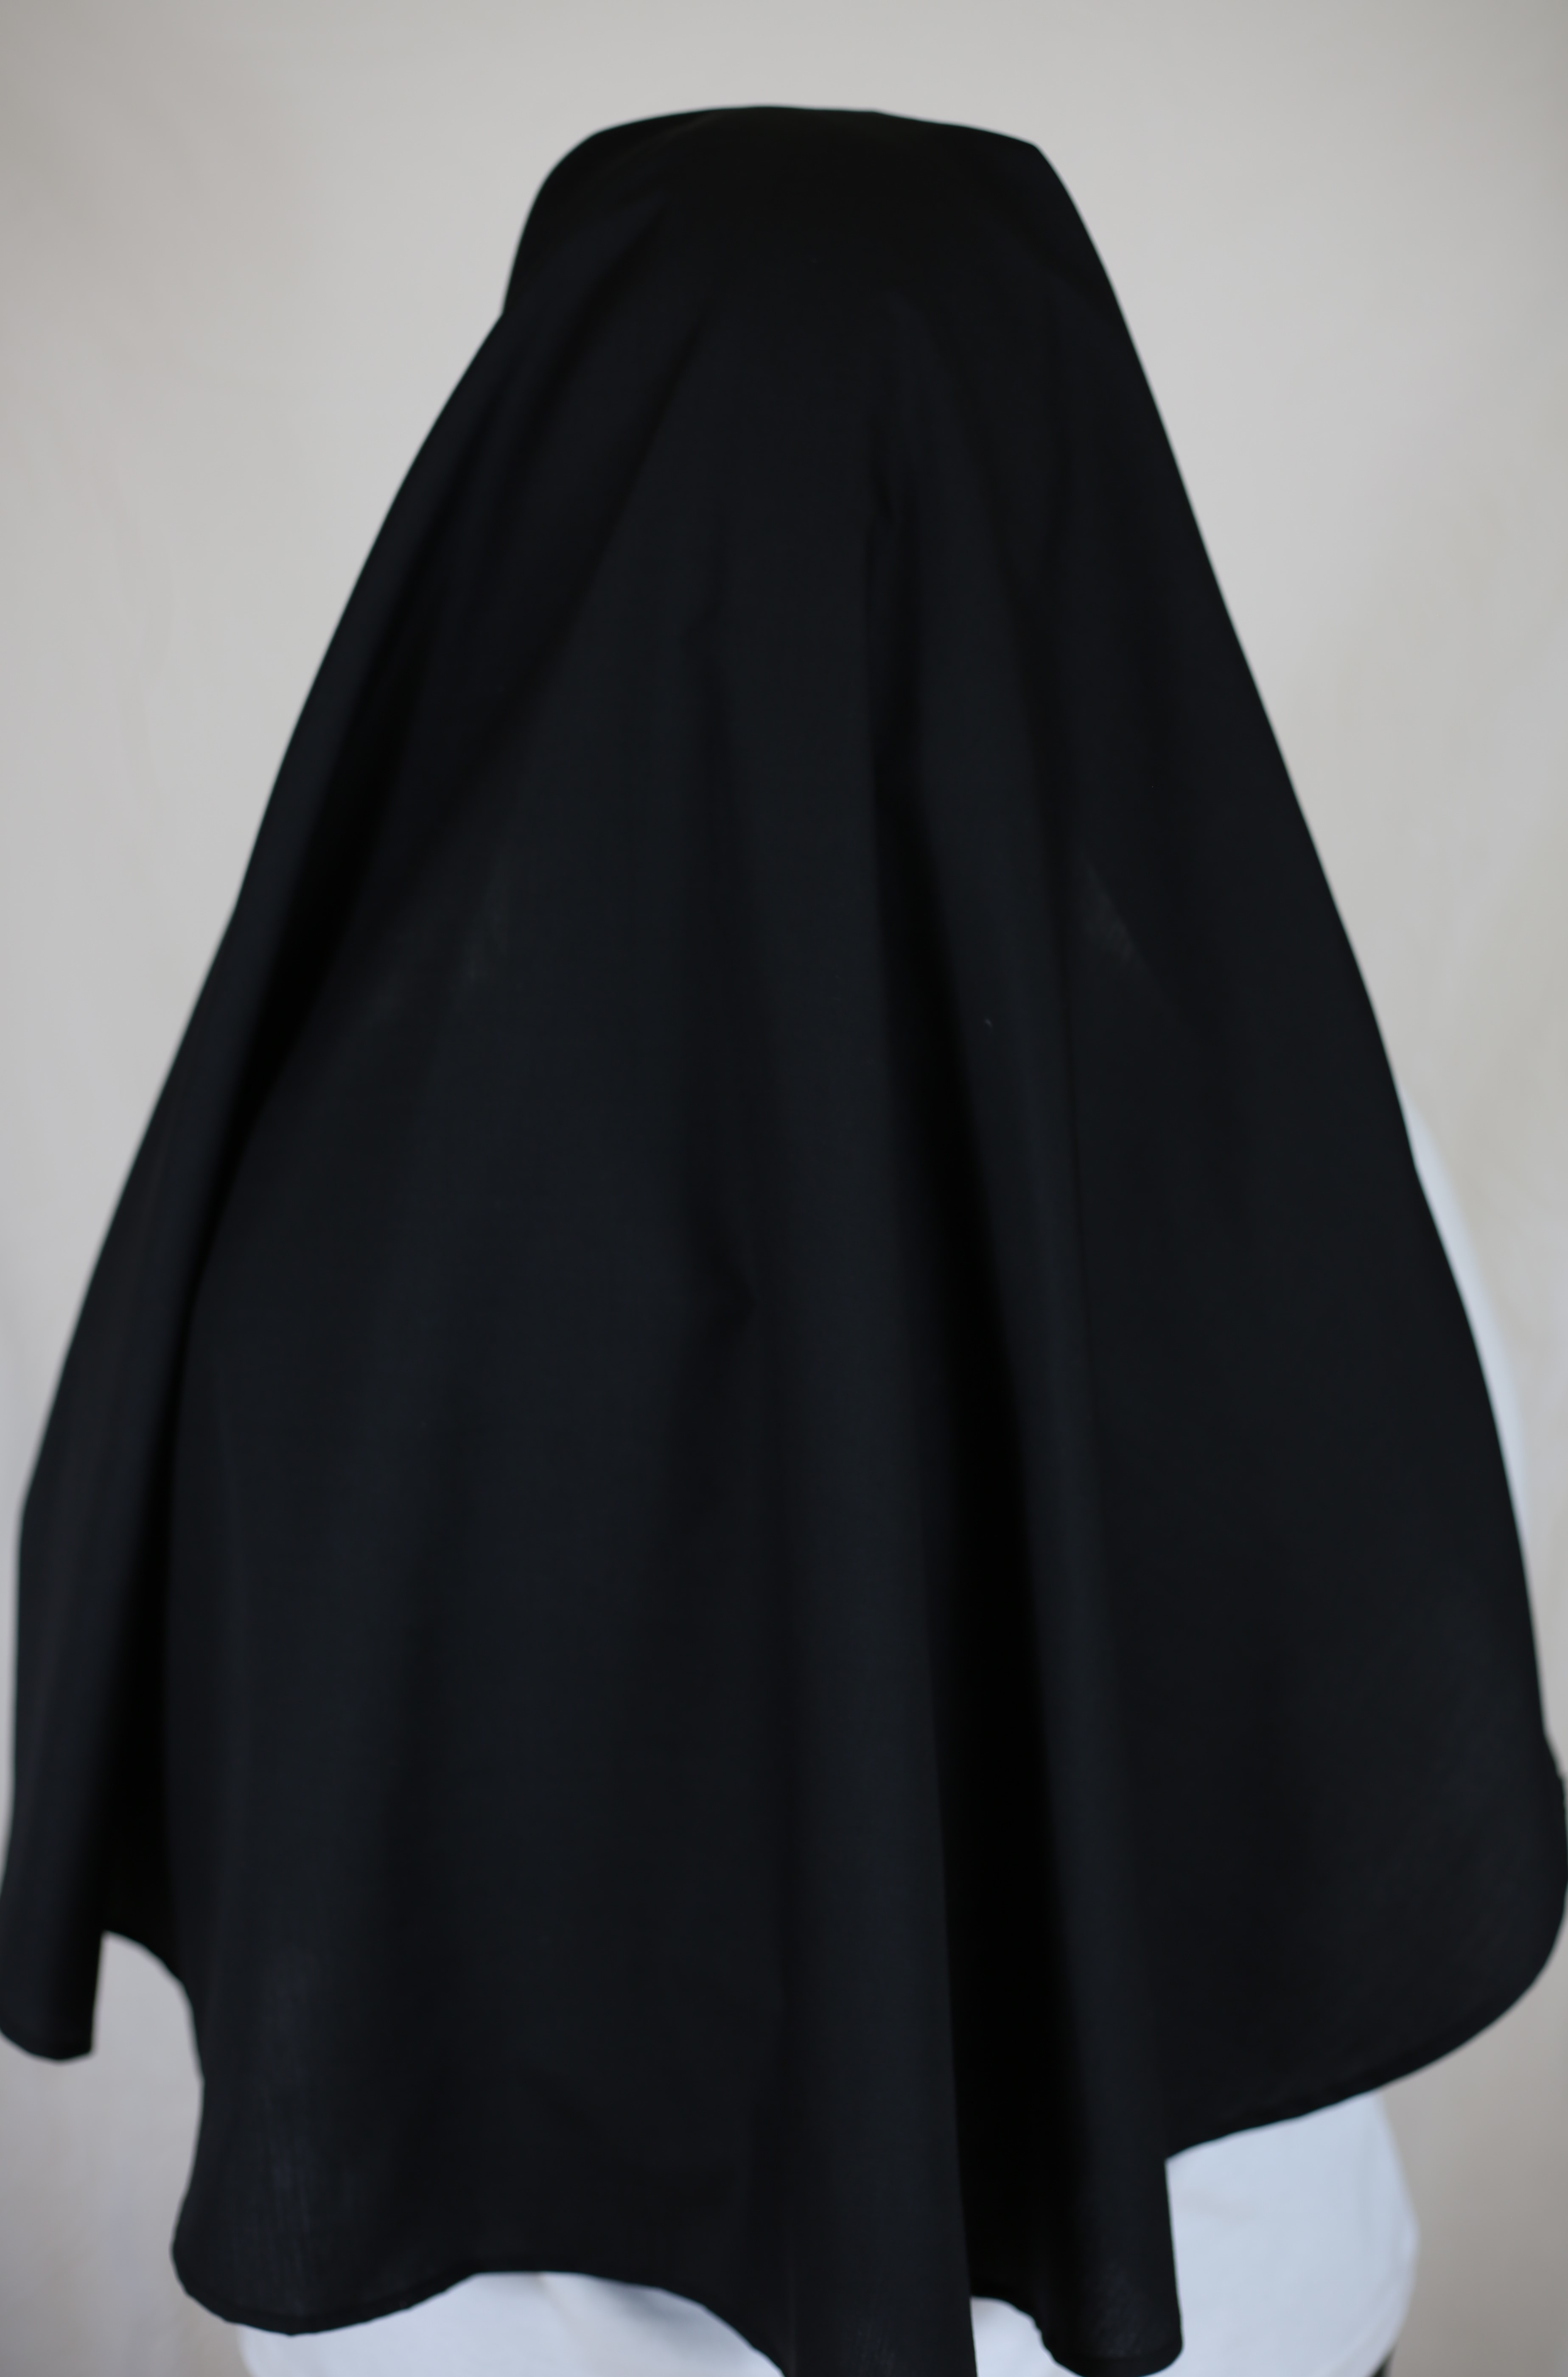 Nun Veil With Extra Wide White Trim From Tide Commercial